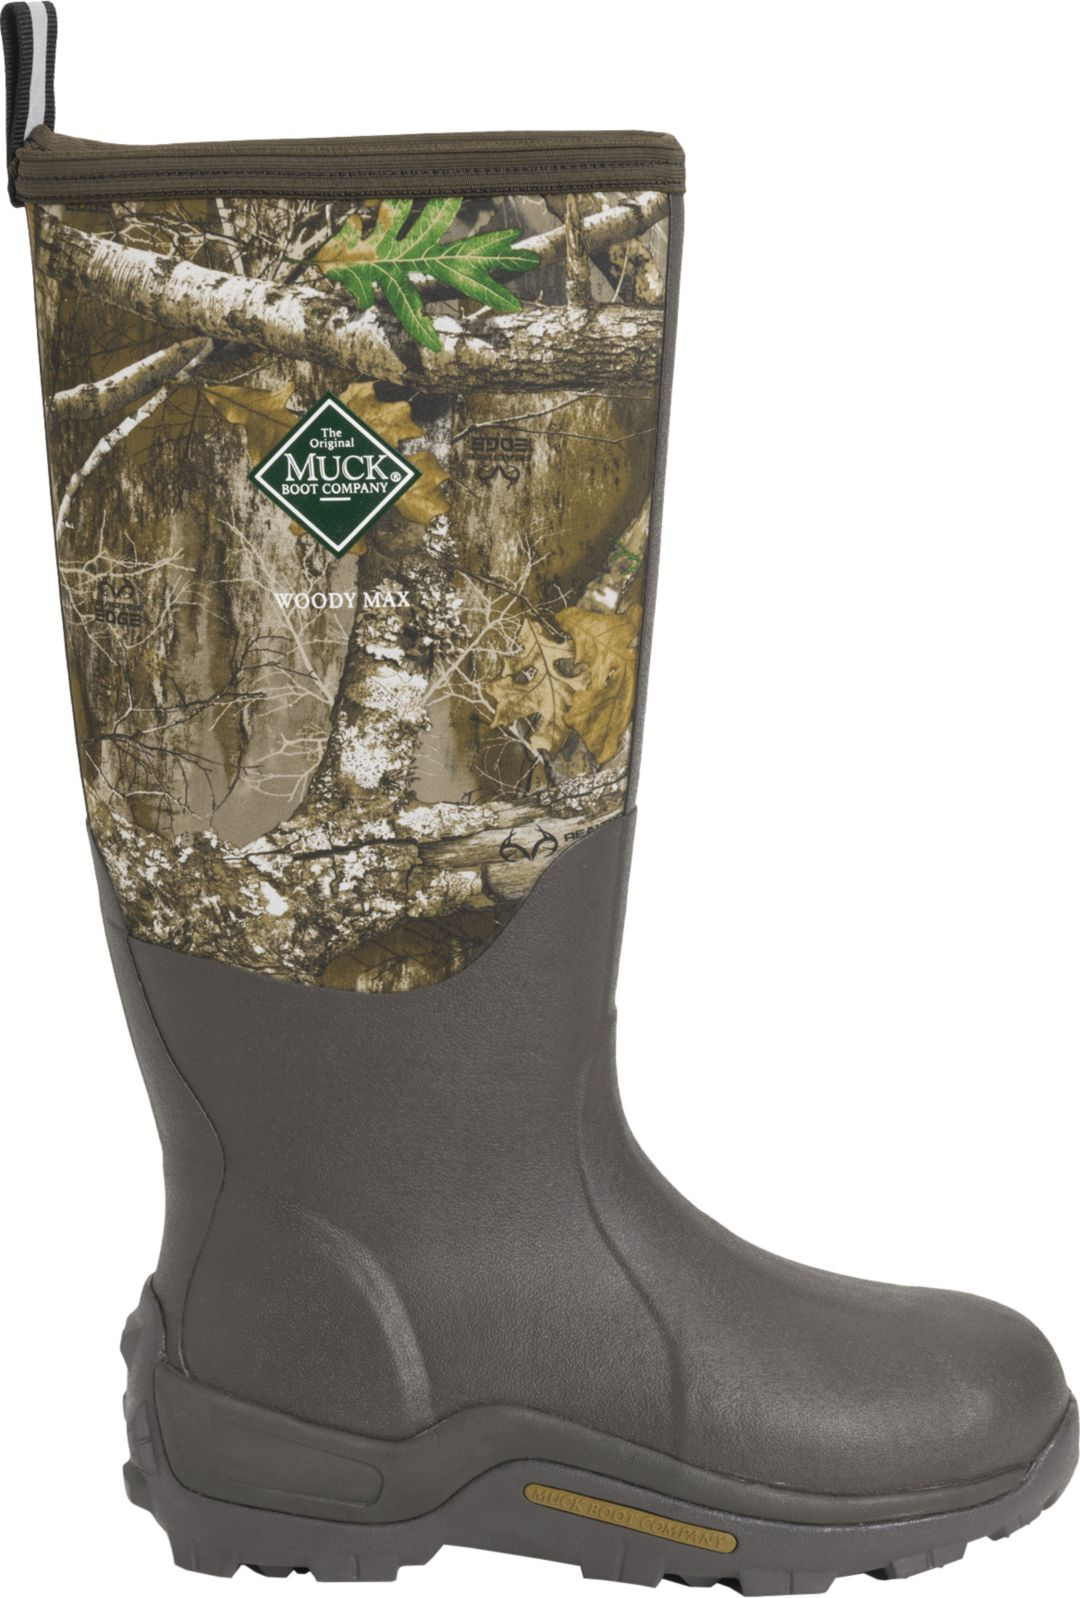 Woody Muck Boots